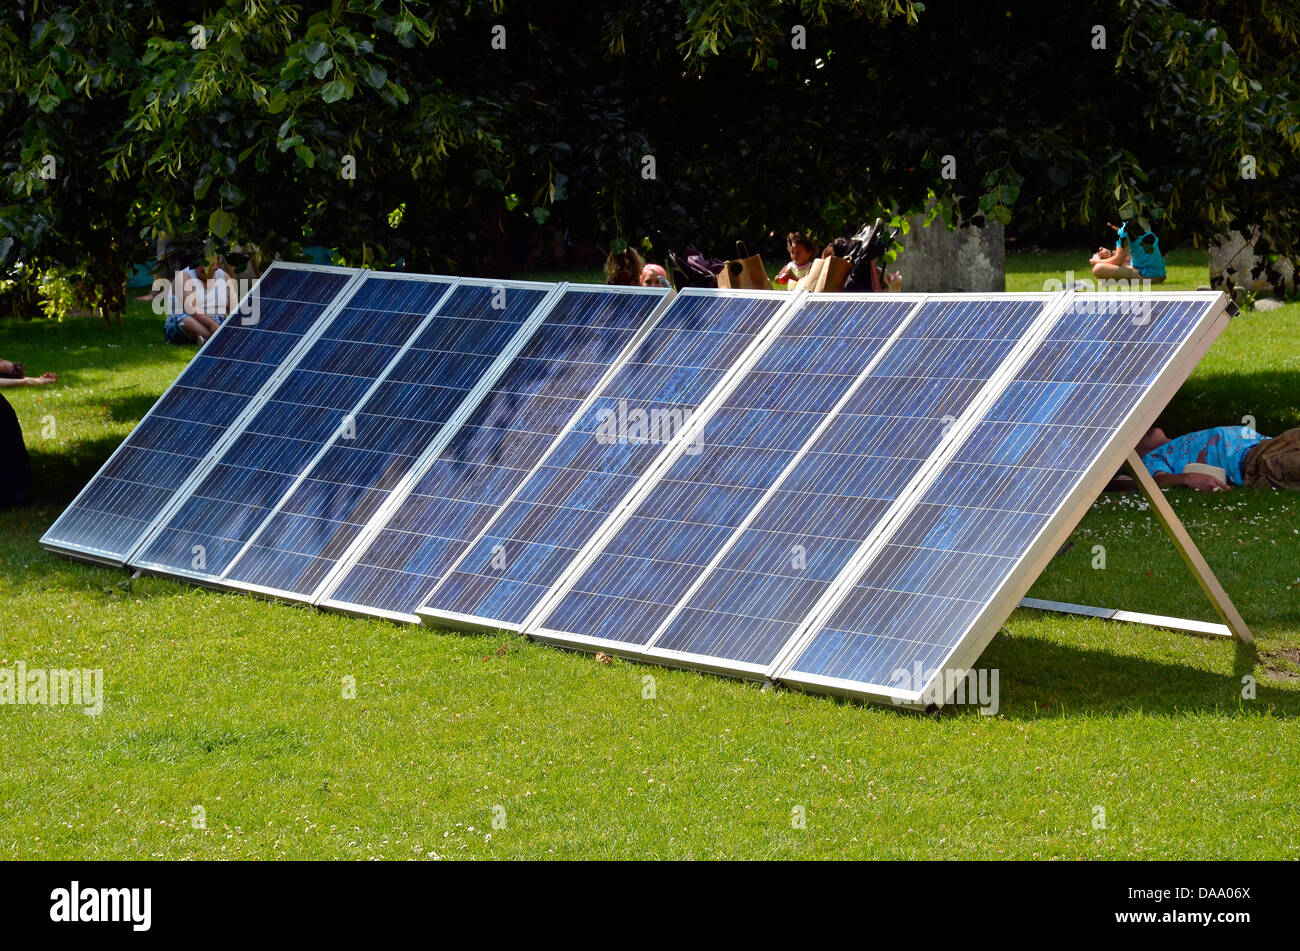 Portable solar panels (photovoltaic panels) powering outdoor PA systems during the Hat Fair , Cathedral Close, Winchester. - Stock Image